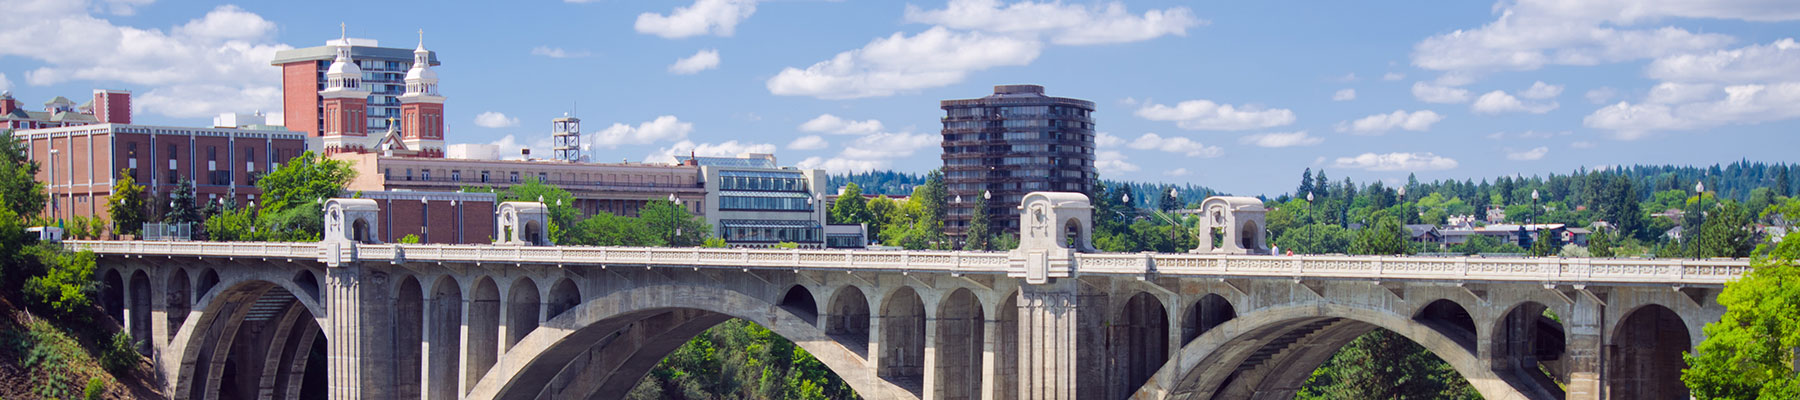 Spokane's Monroe Street Bridge